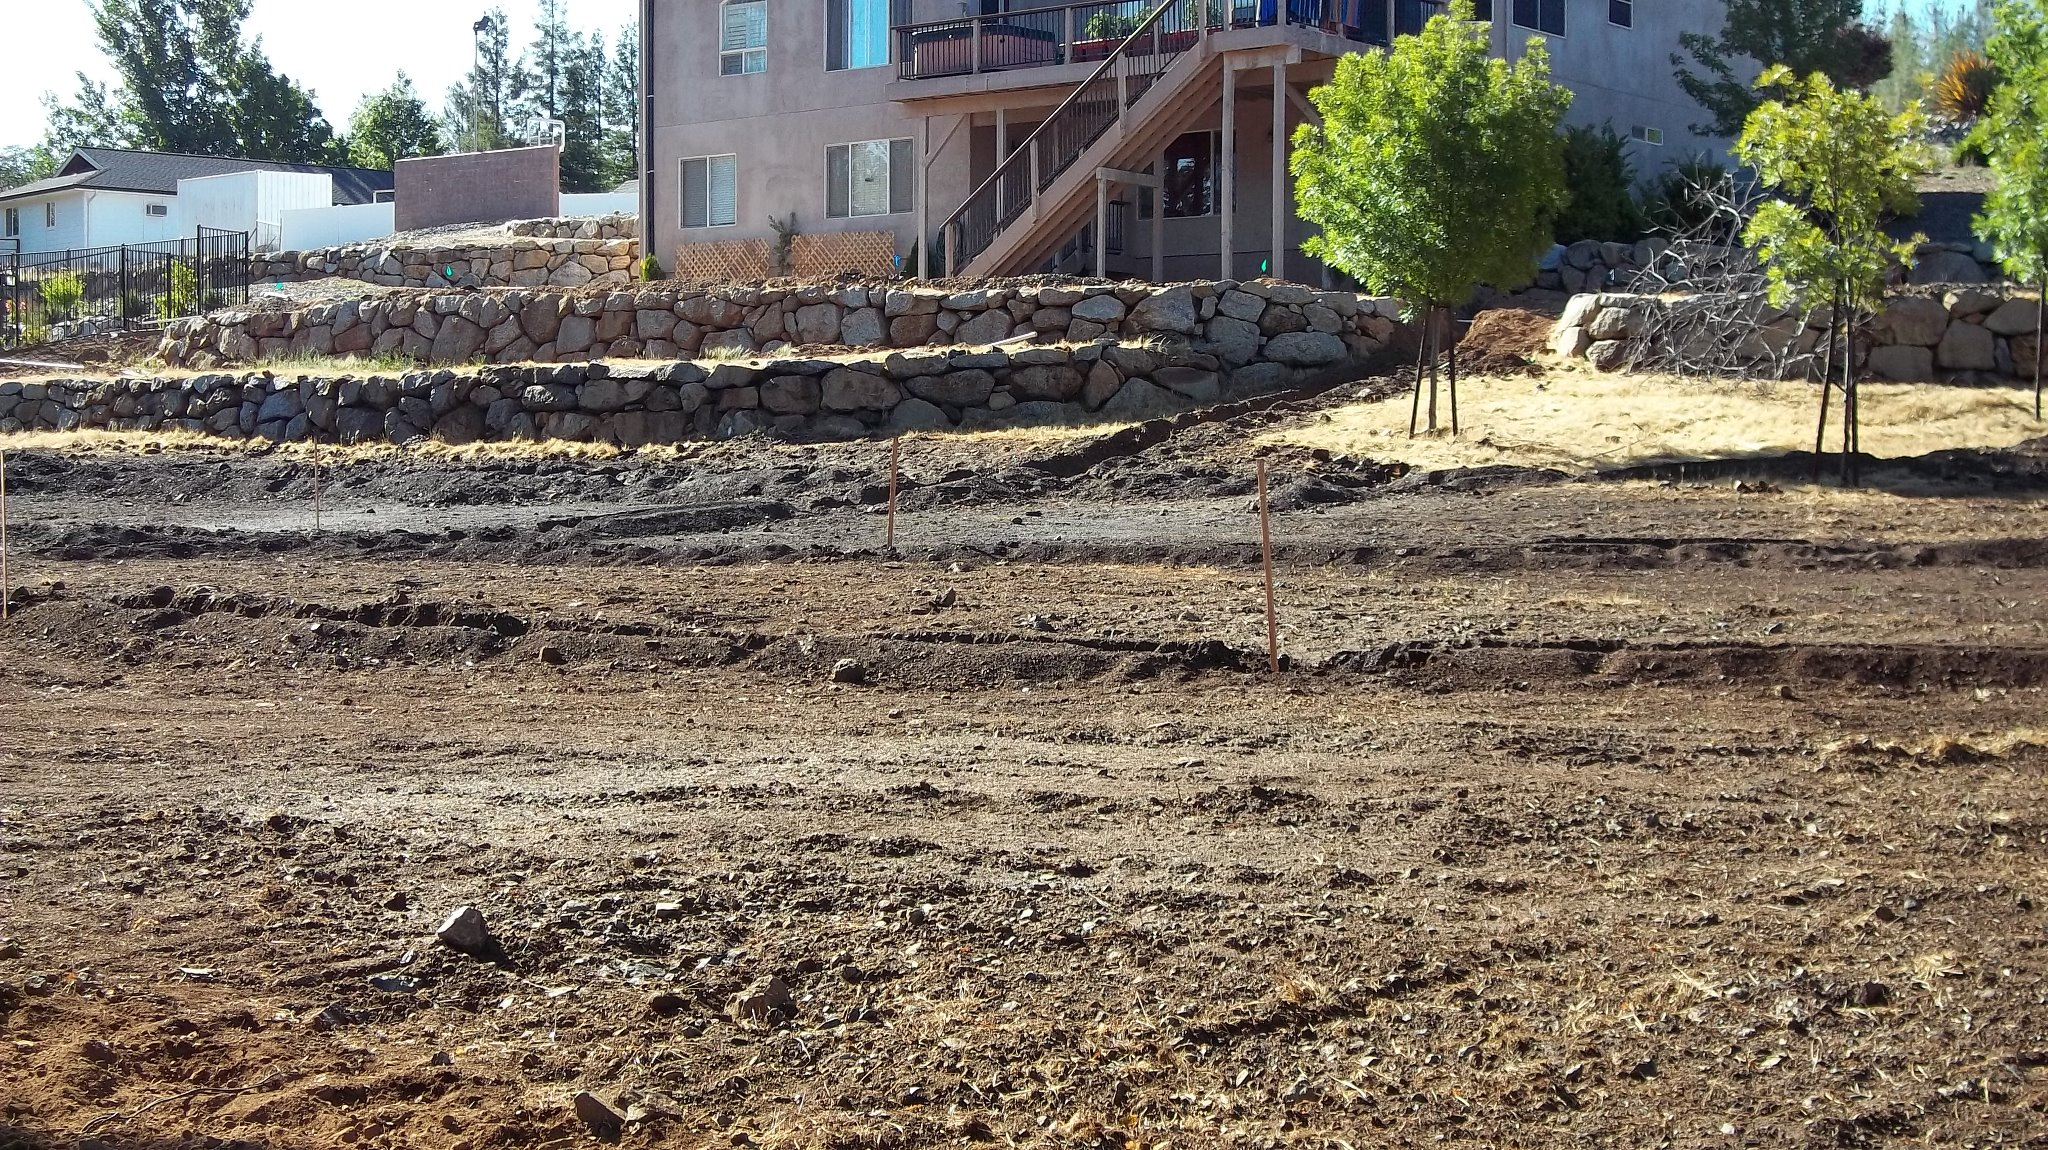 Land in front of house makes with wooden poles and leveled out.